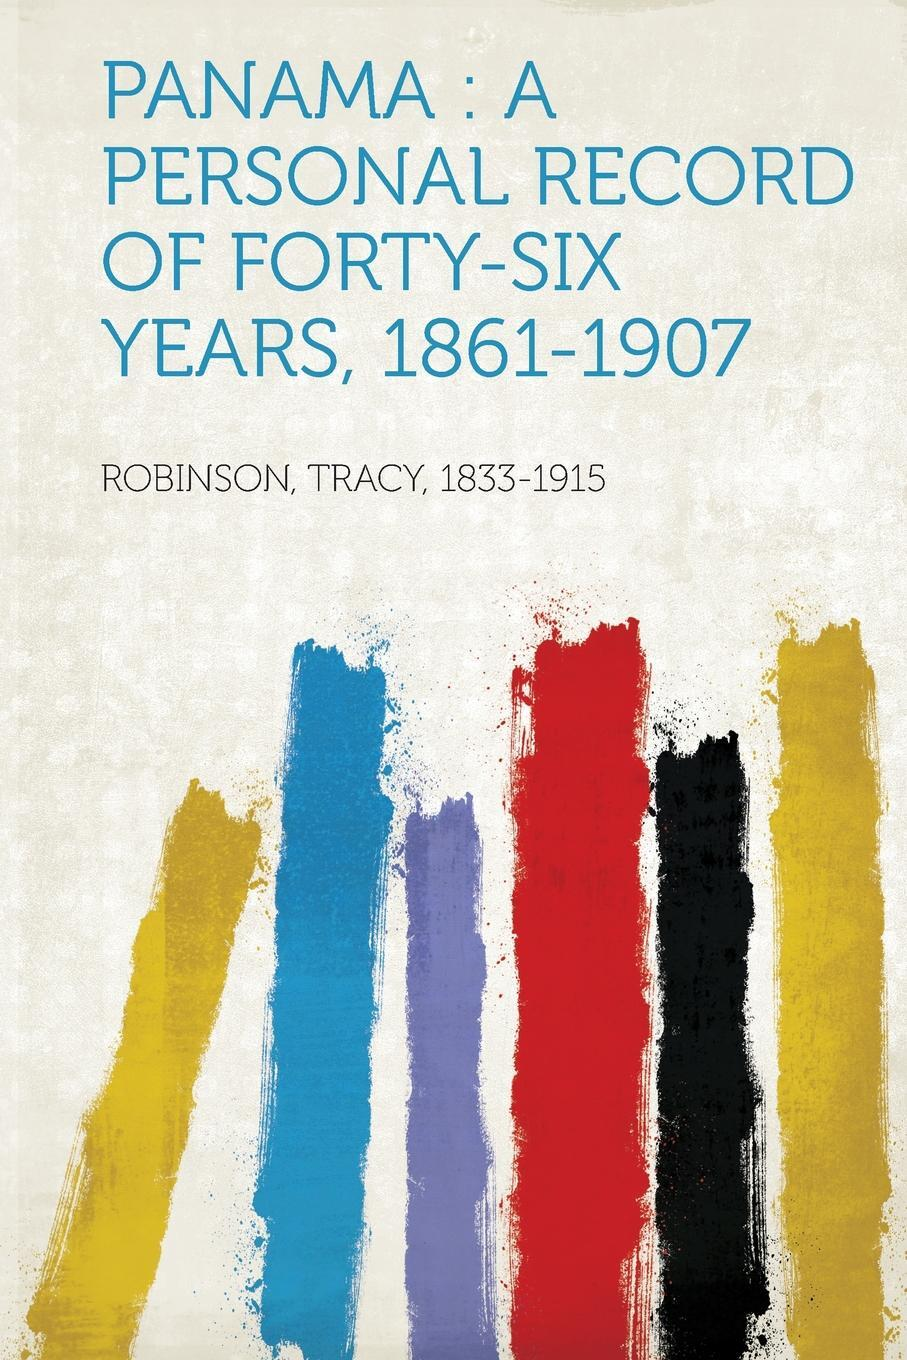 Panama. a Personal Record of Forty-Six Years, 1861-1907